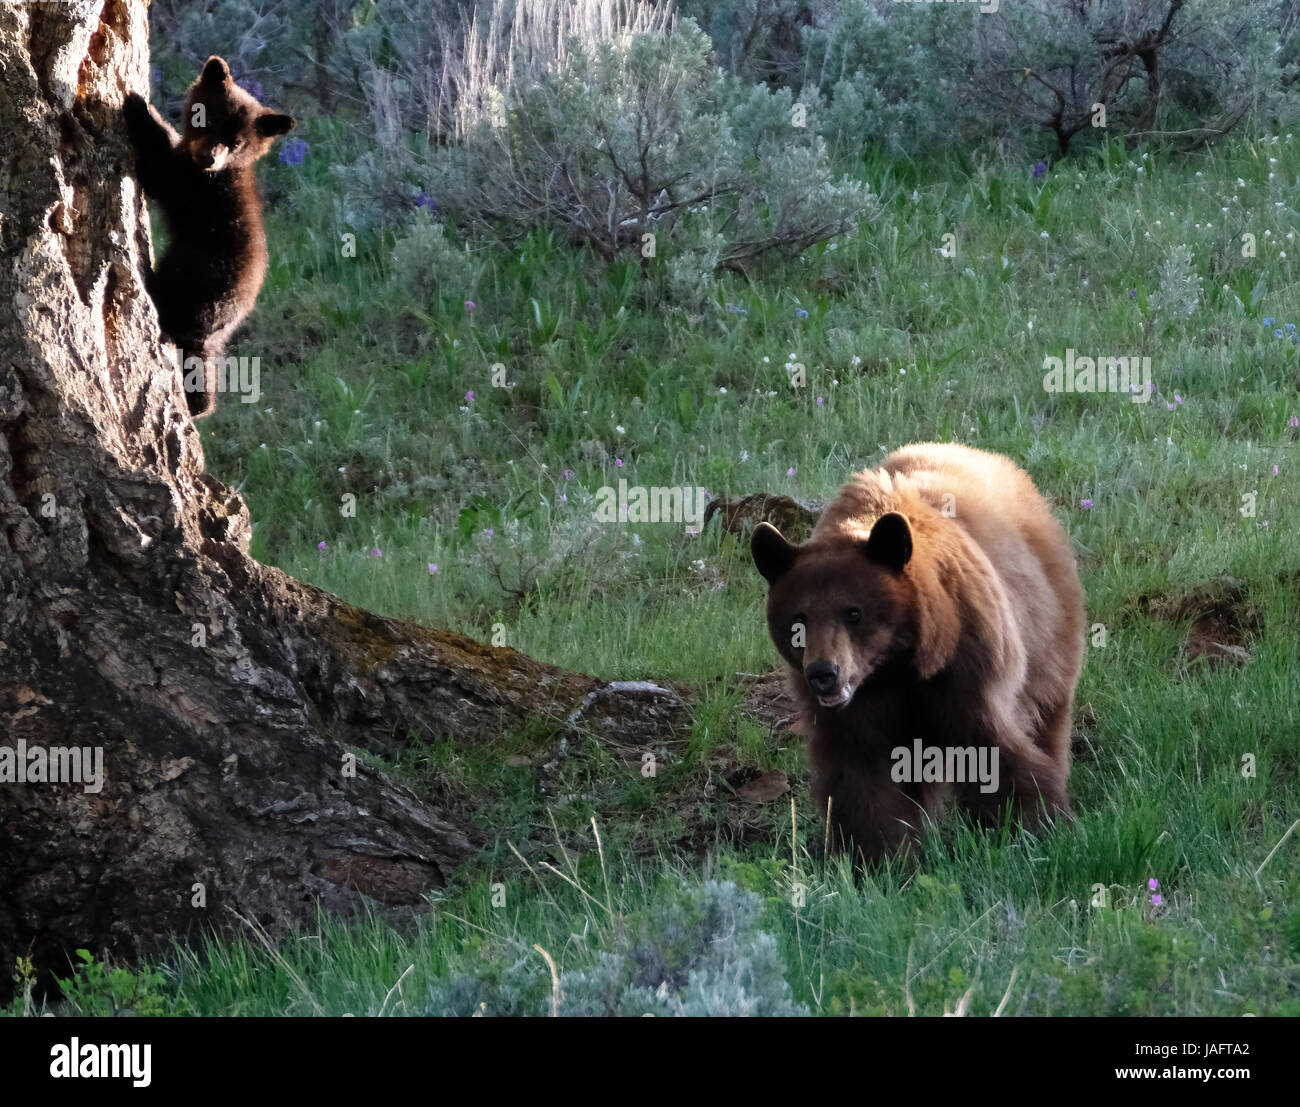 American Black Bear Female Sow with baby cubs in Yellowstone National Park,  Wyoming - Stock Image